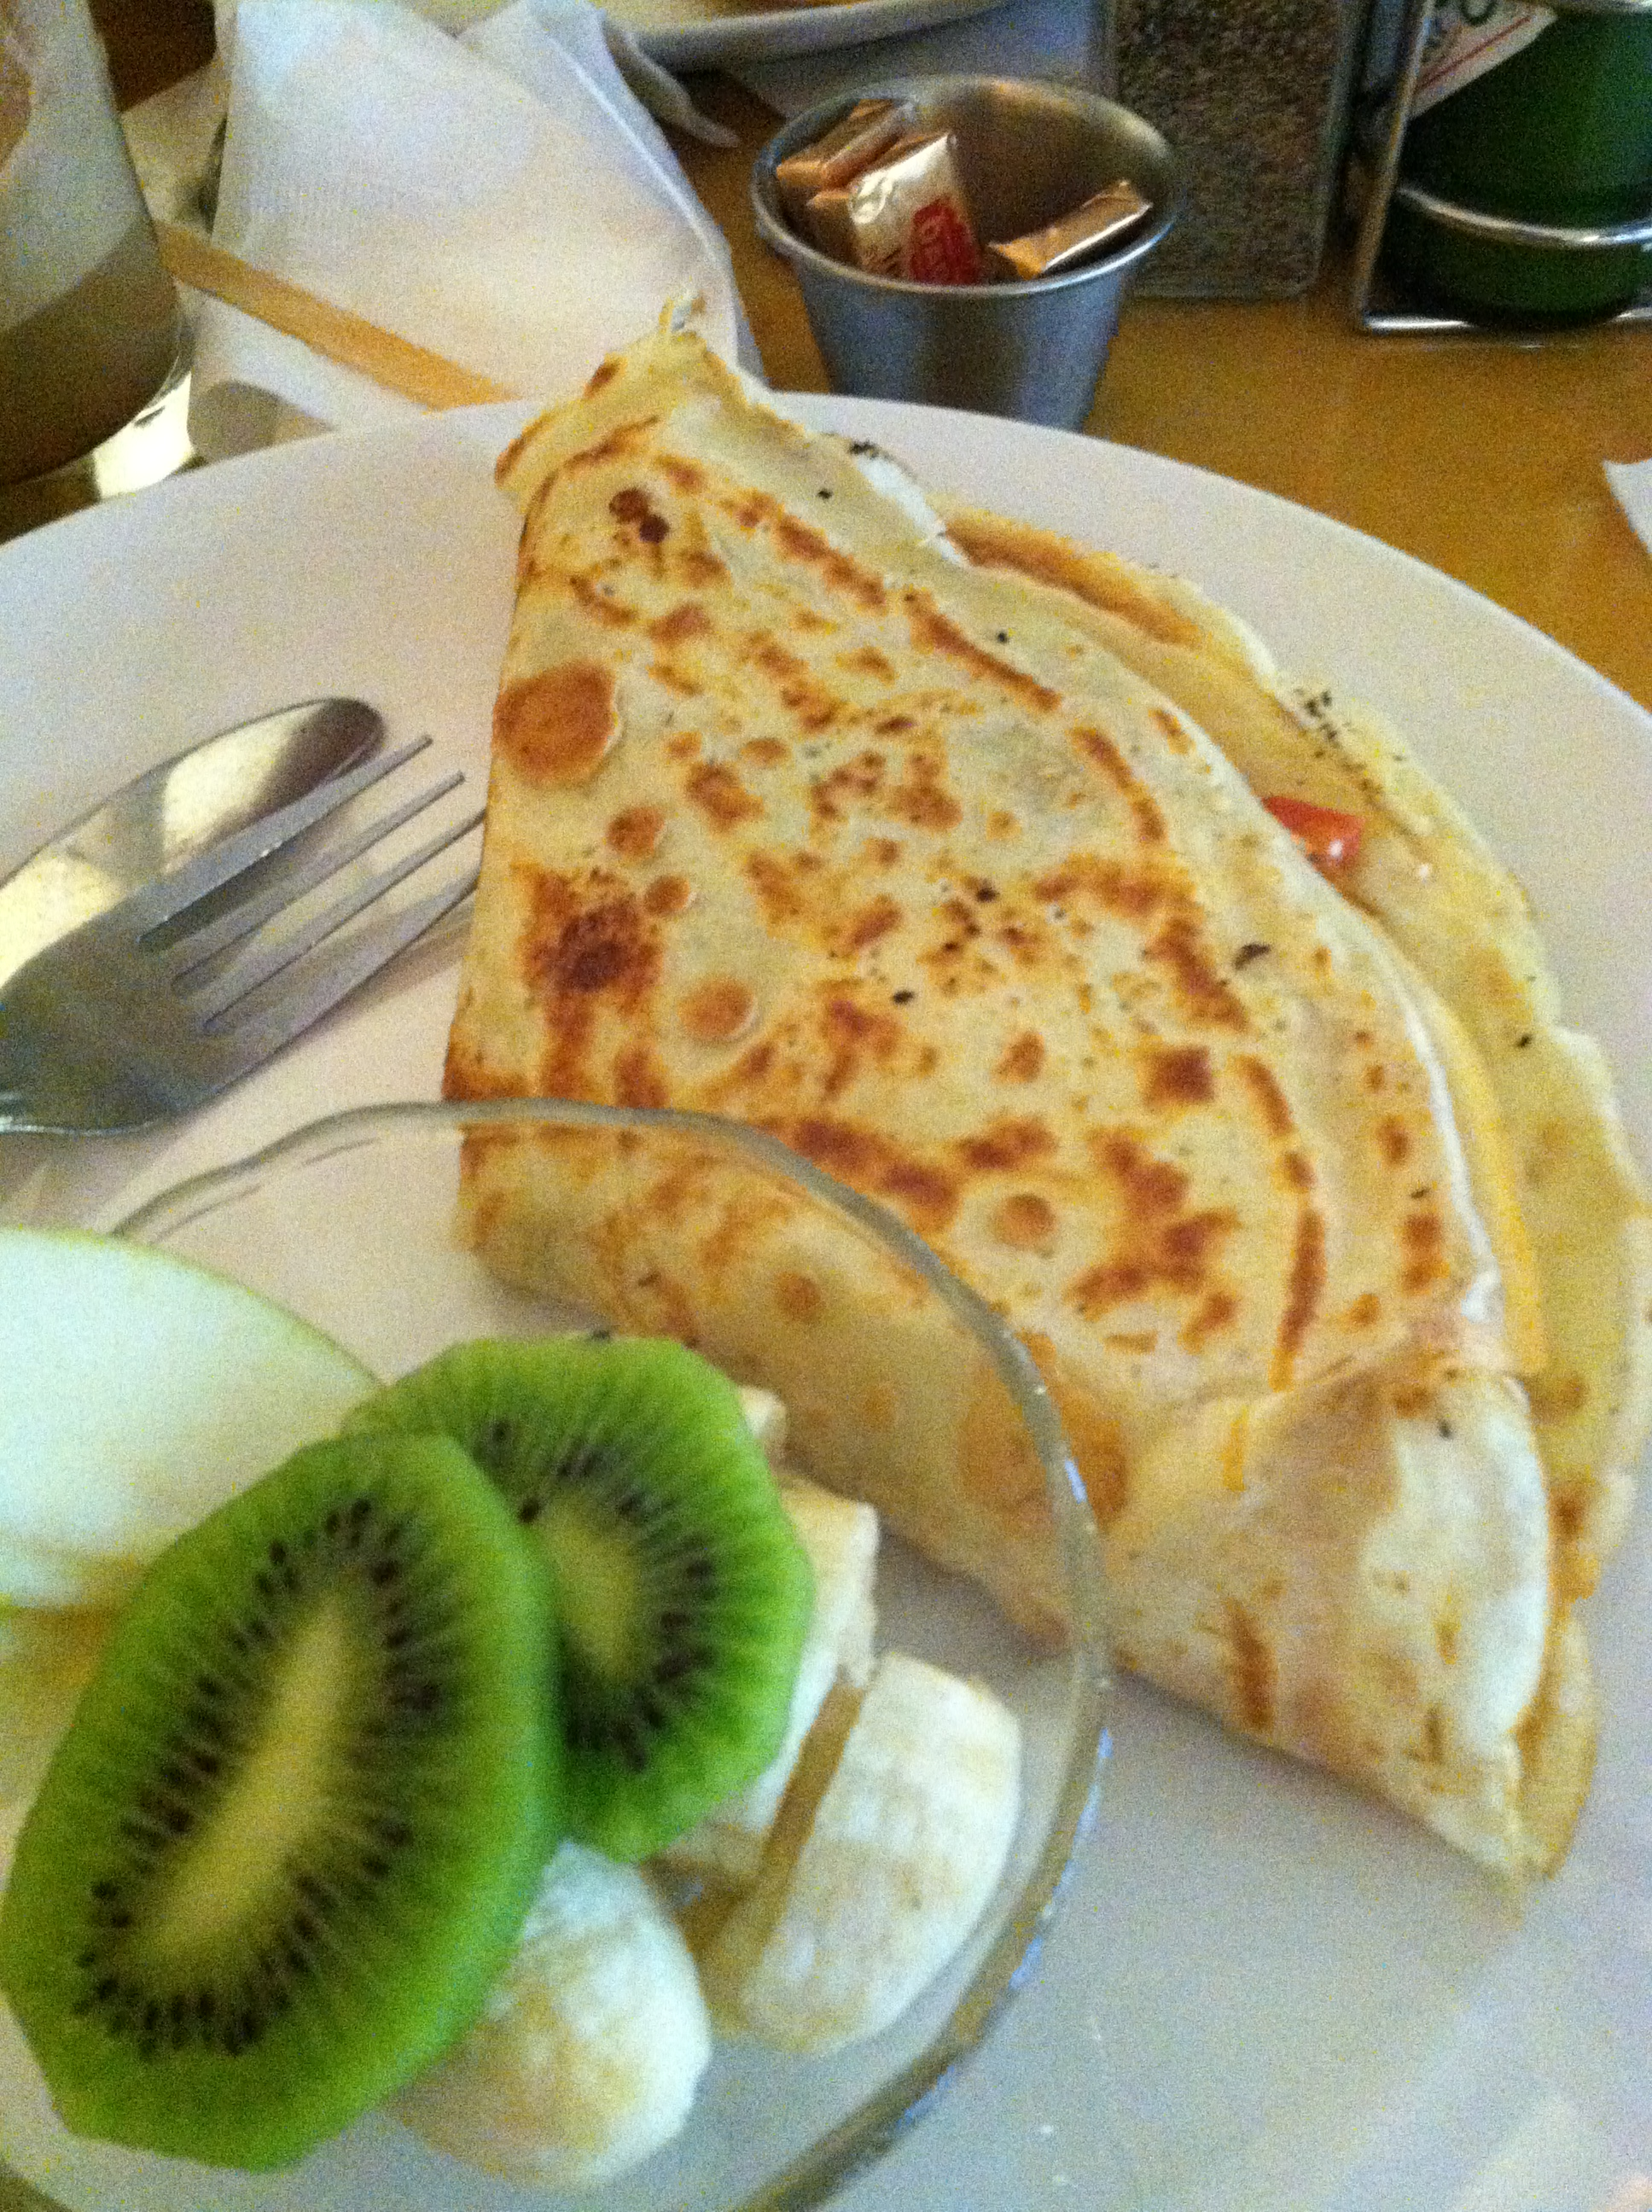 Crepes and fruit. Mmmm.